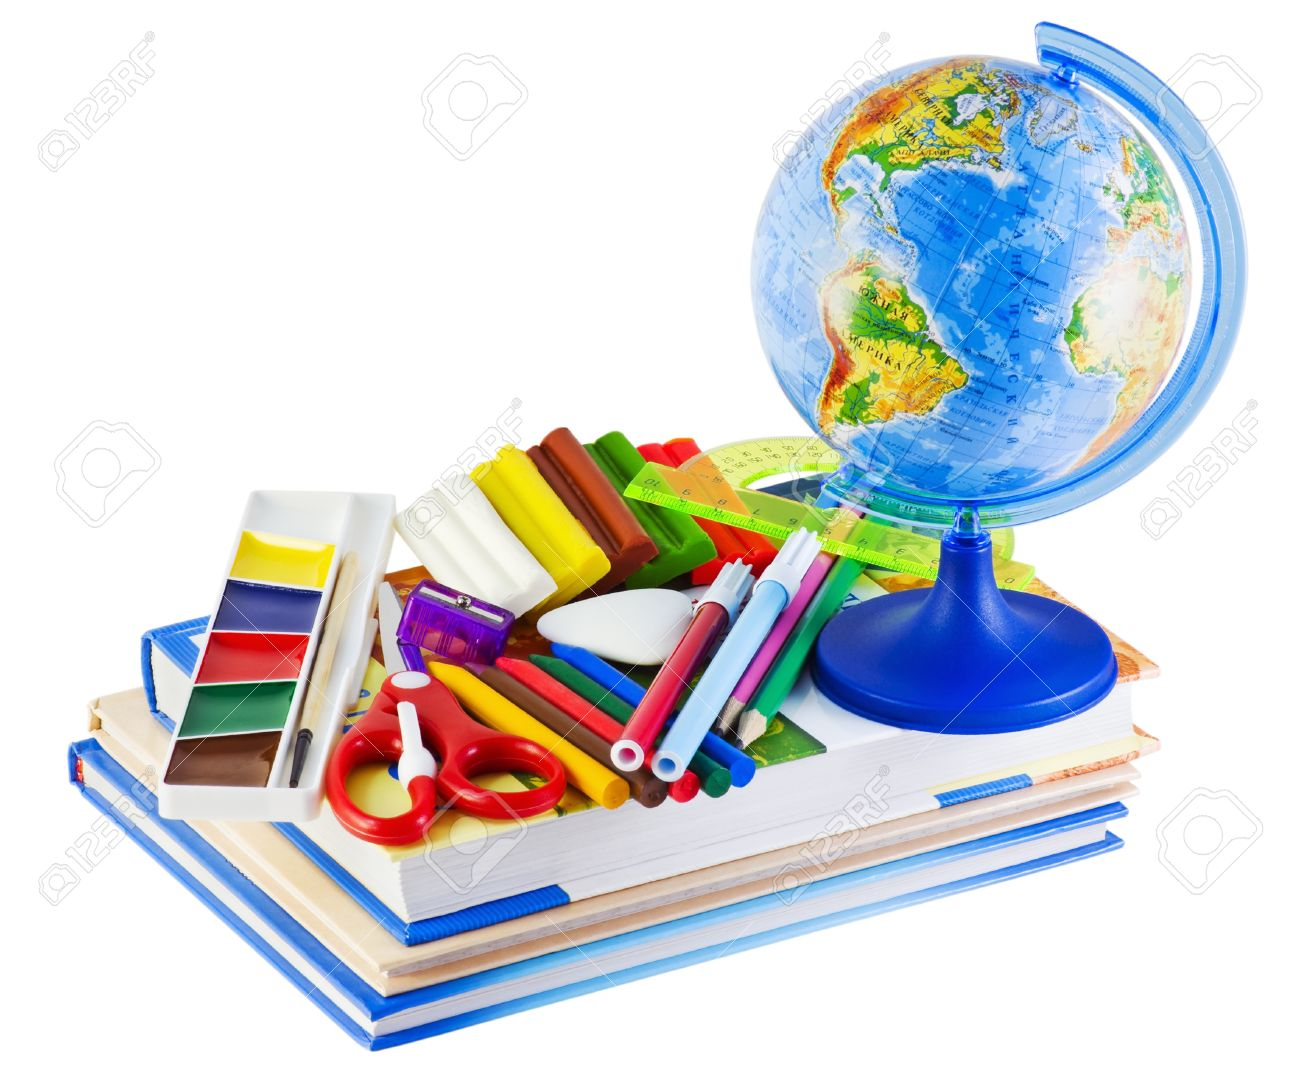 11098081-Globe-textbooks-and-other-school-supplies-Stock-Photo